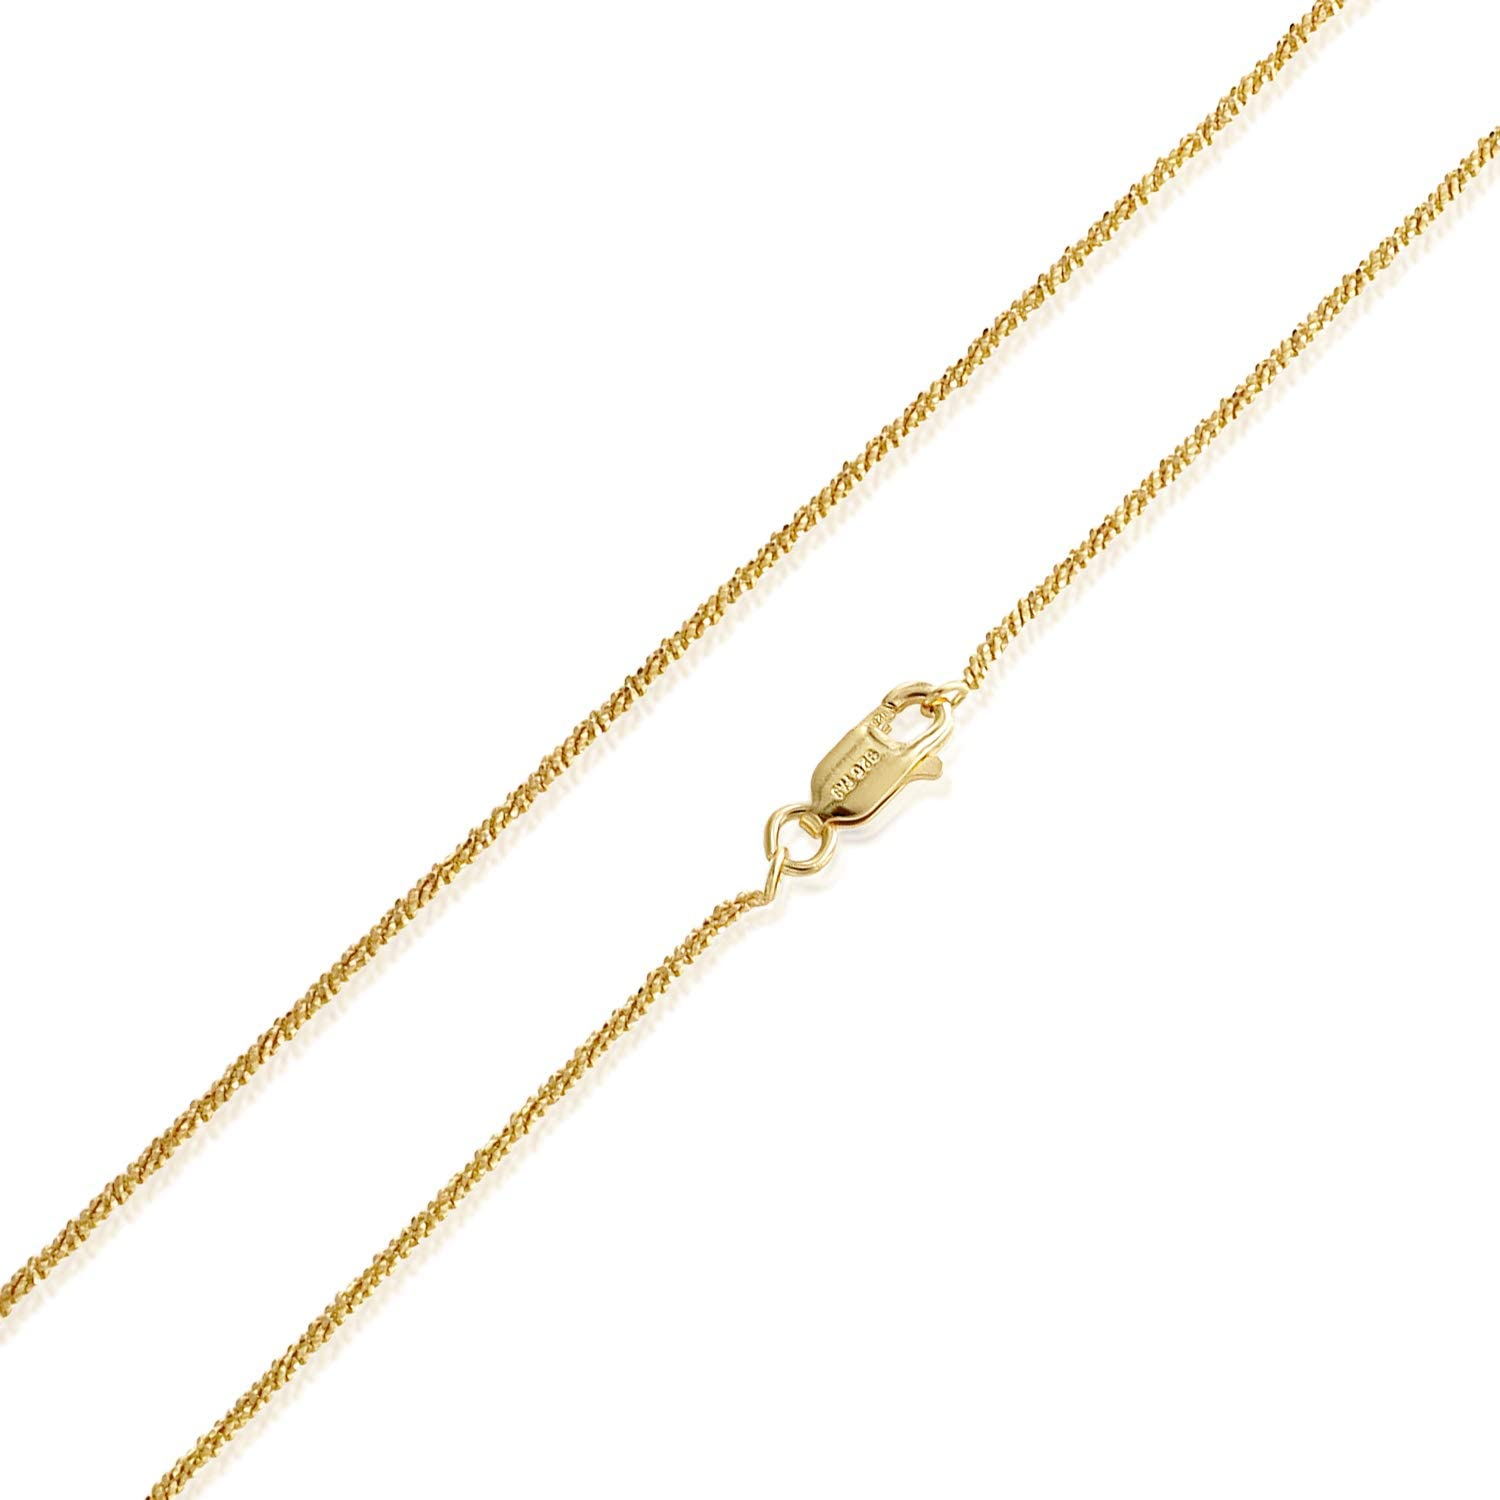 Sterling Silver 2mm Sparkle Rock Chain Necklace for Women, Size 14